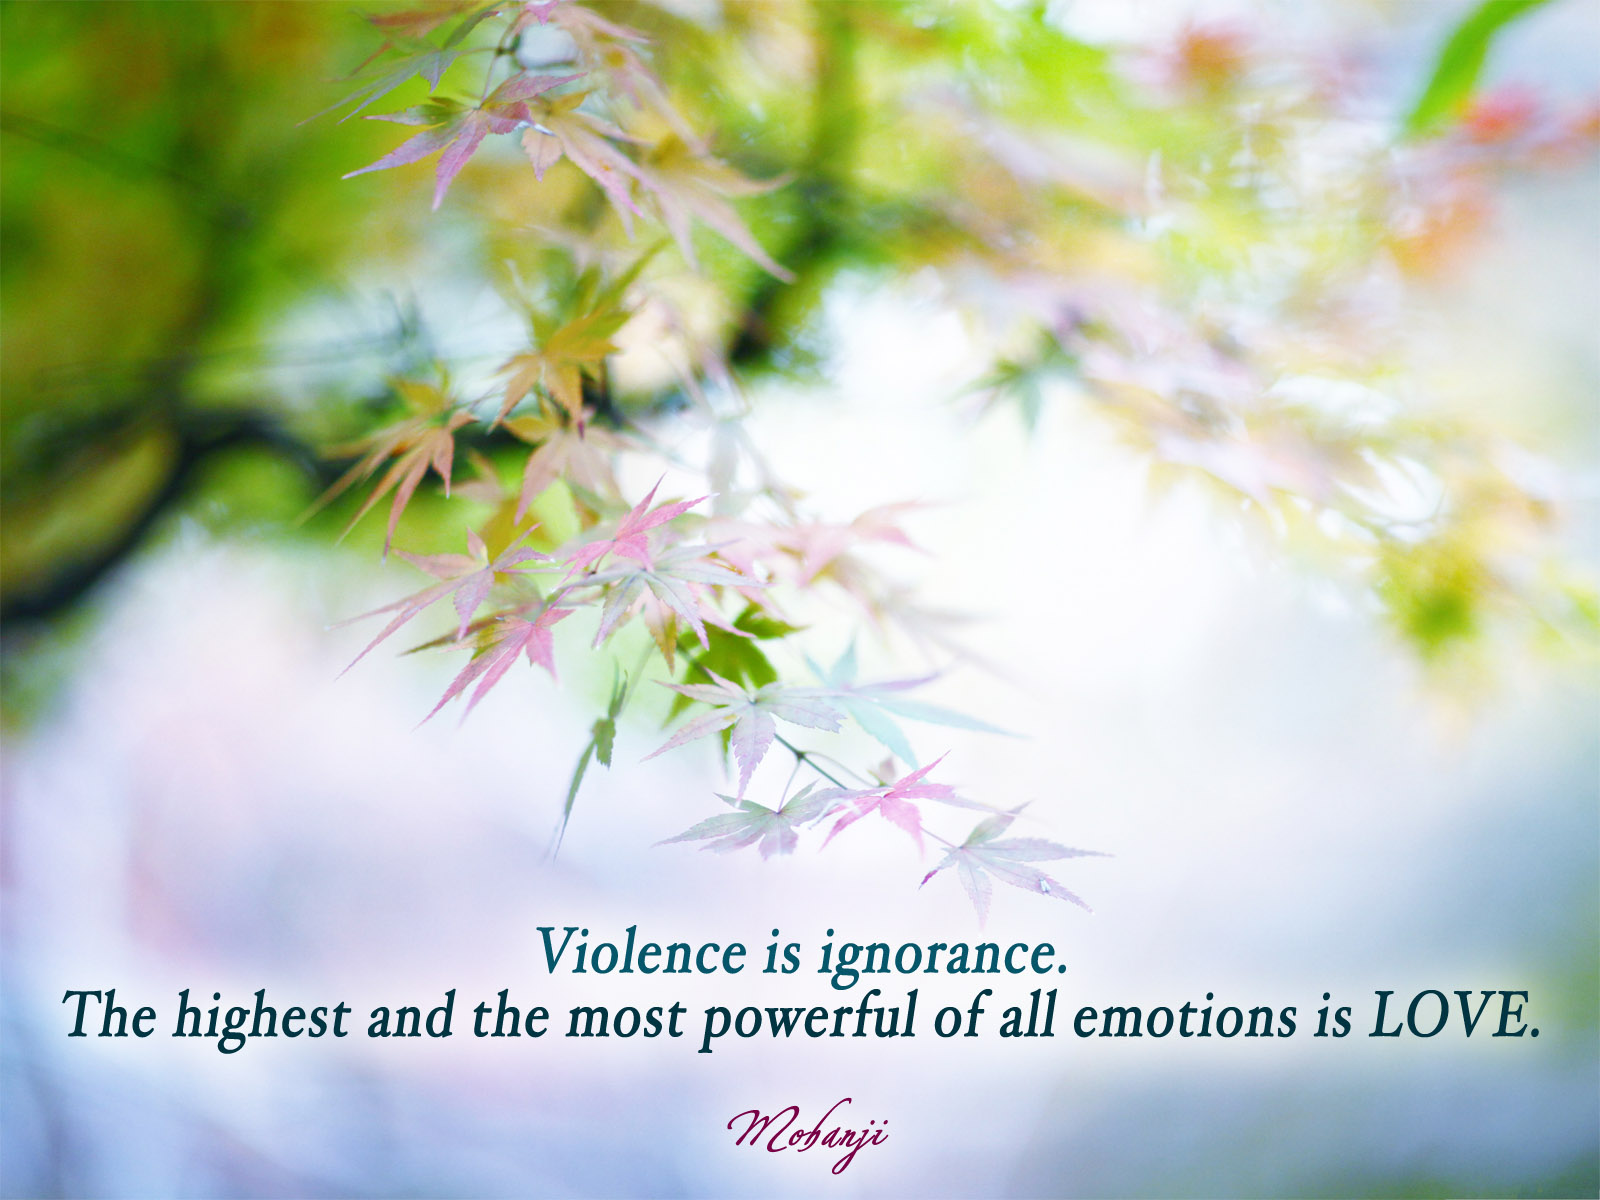 mohanji-quote-violence-is-ignorance